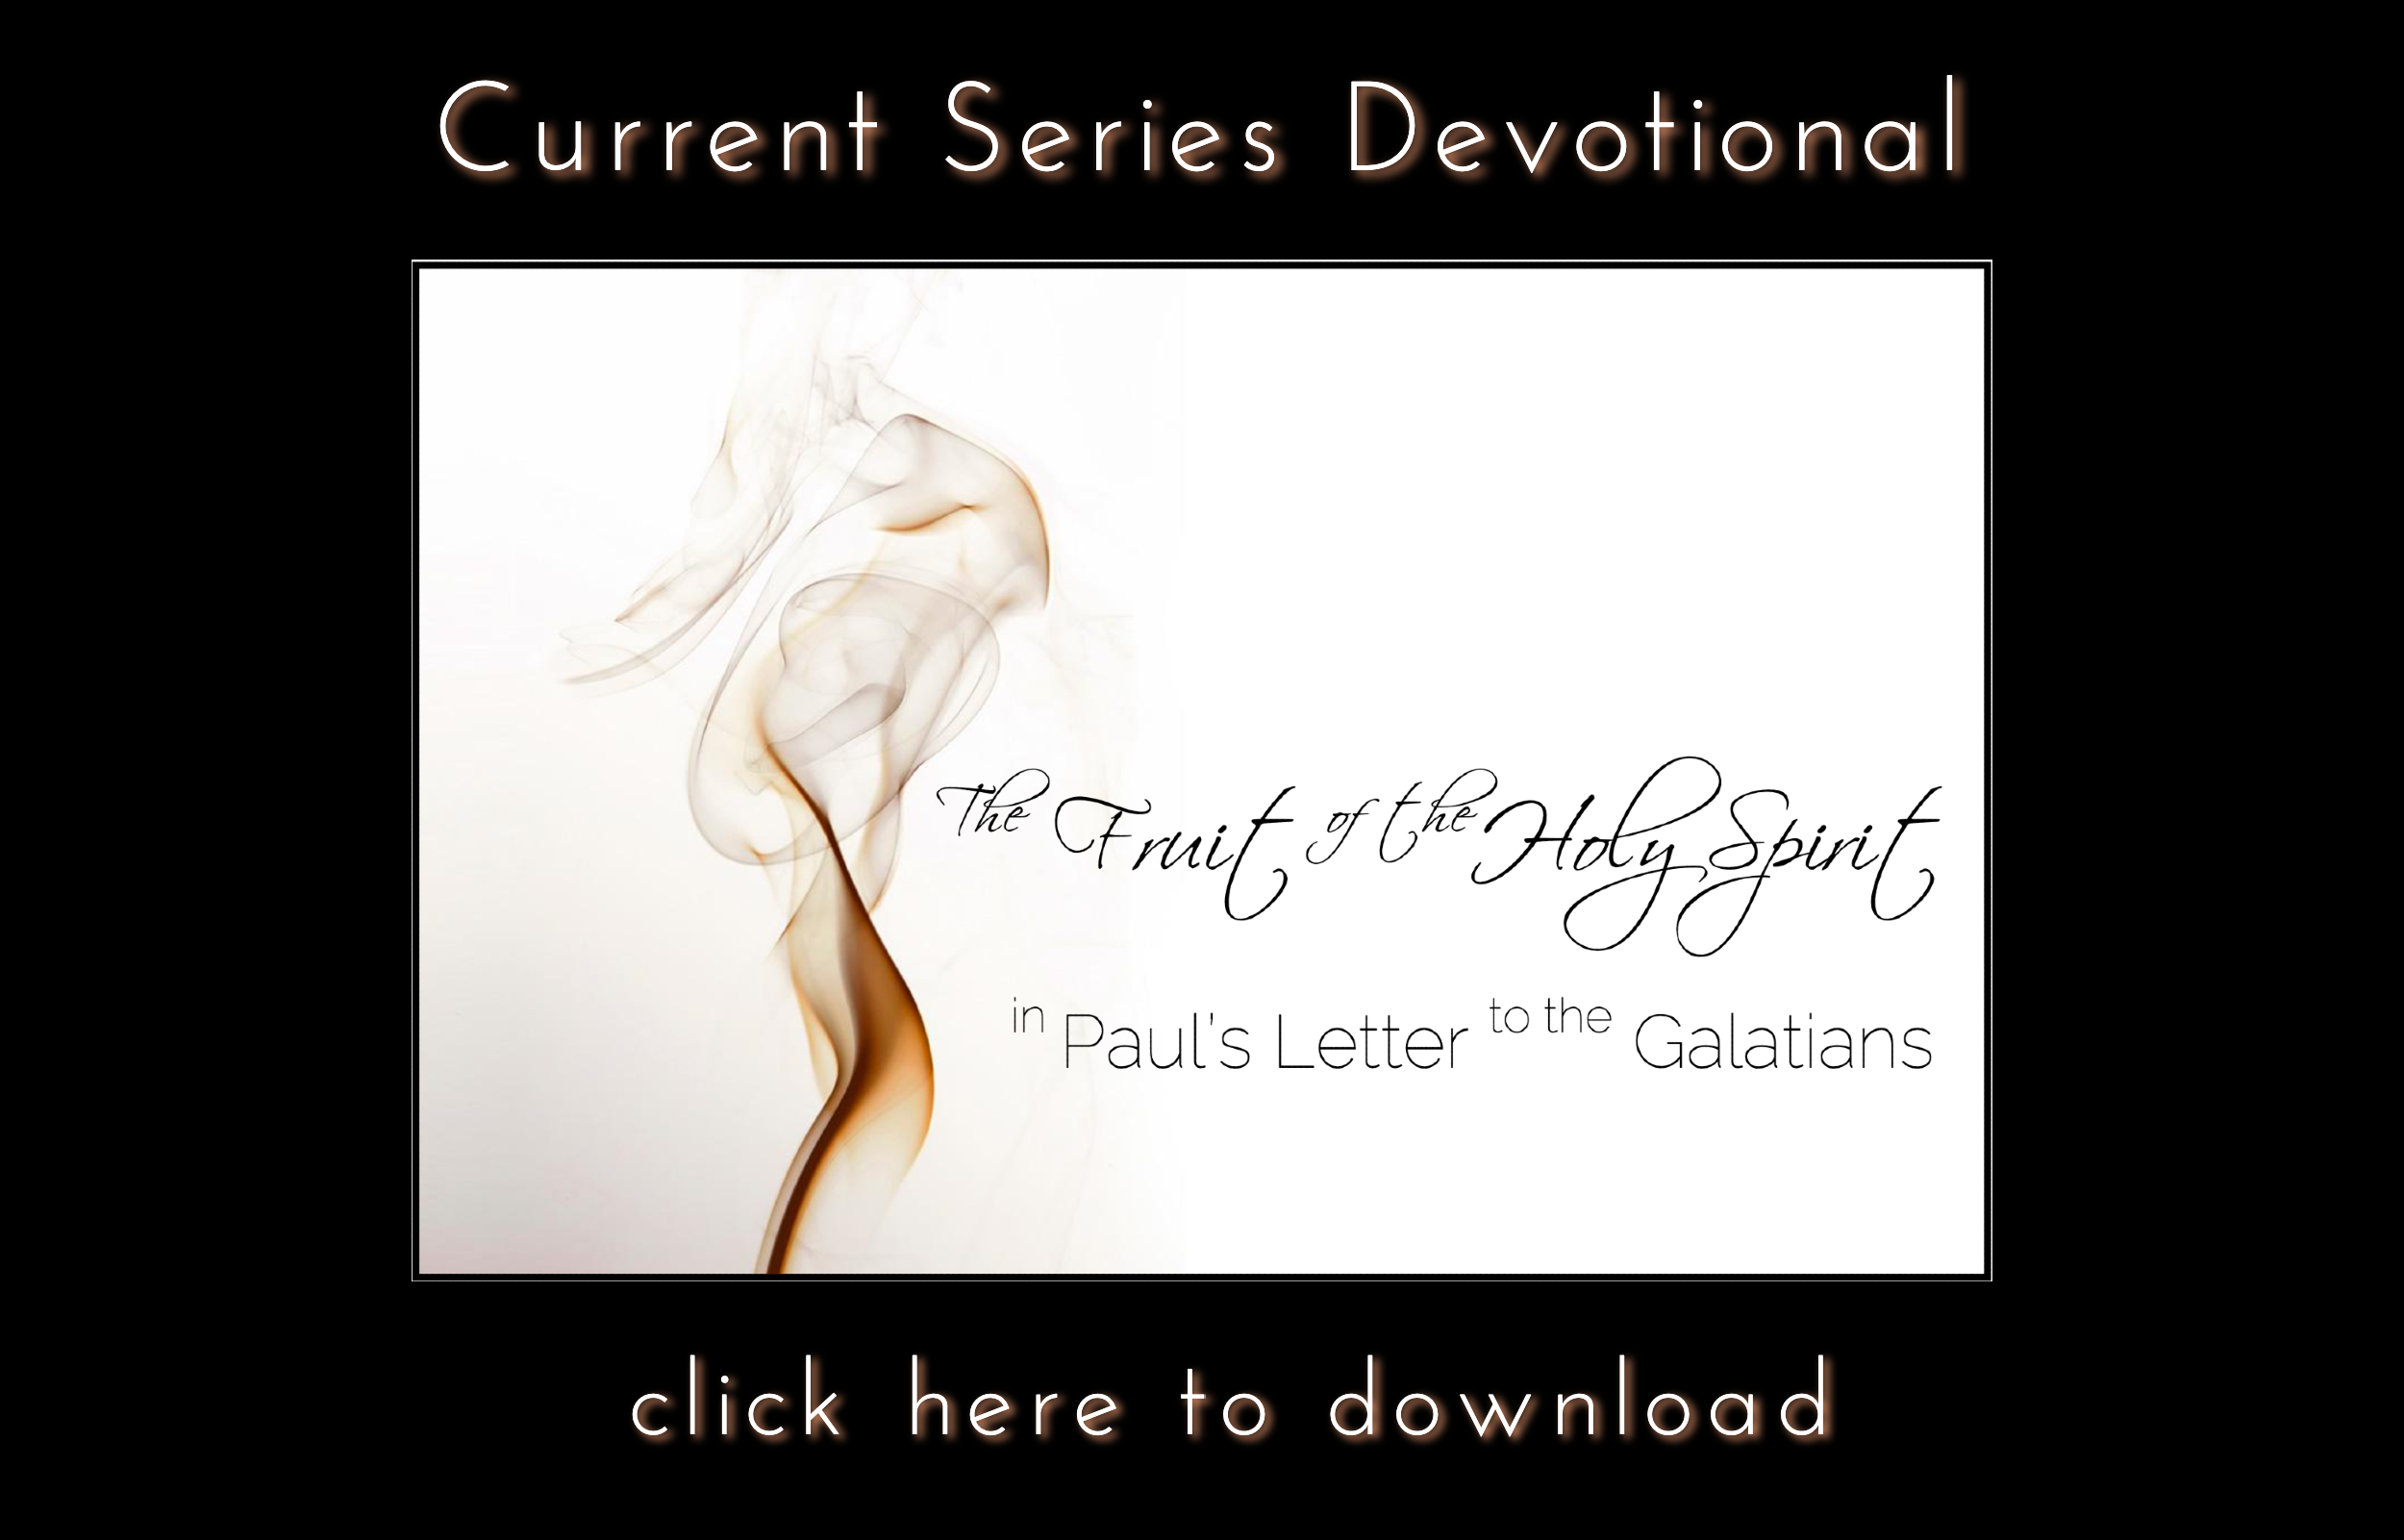 Current Series Devotional Holy Spirit